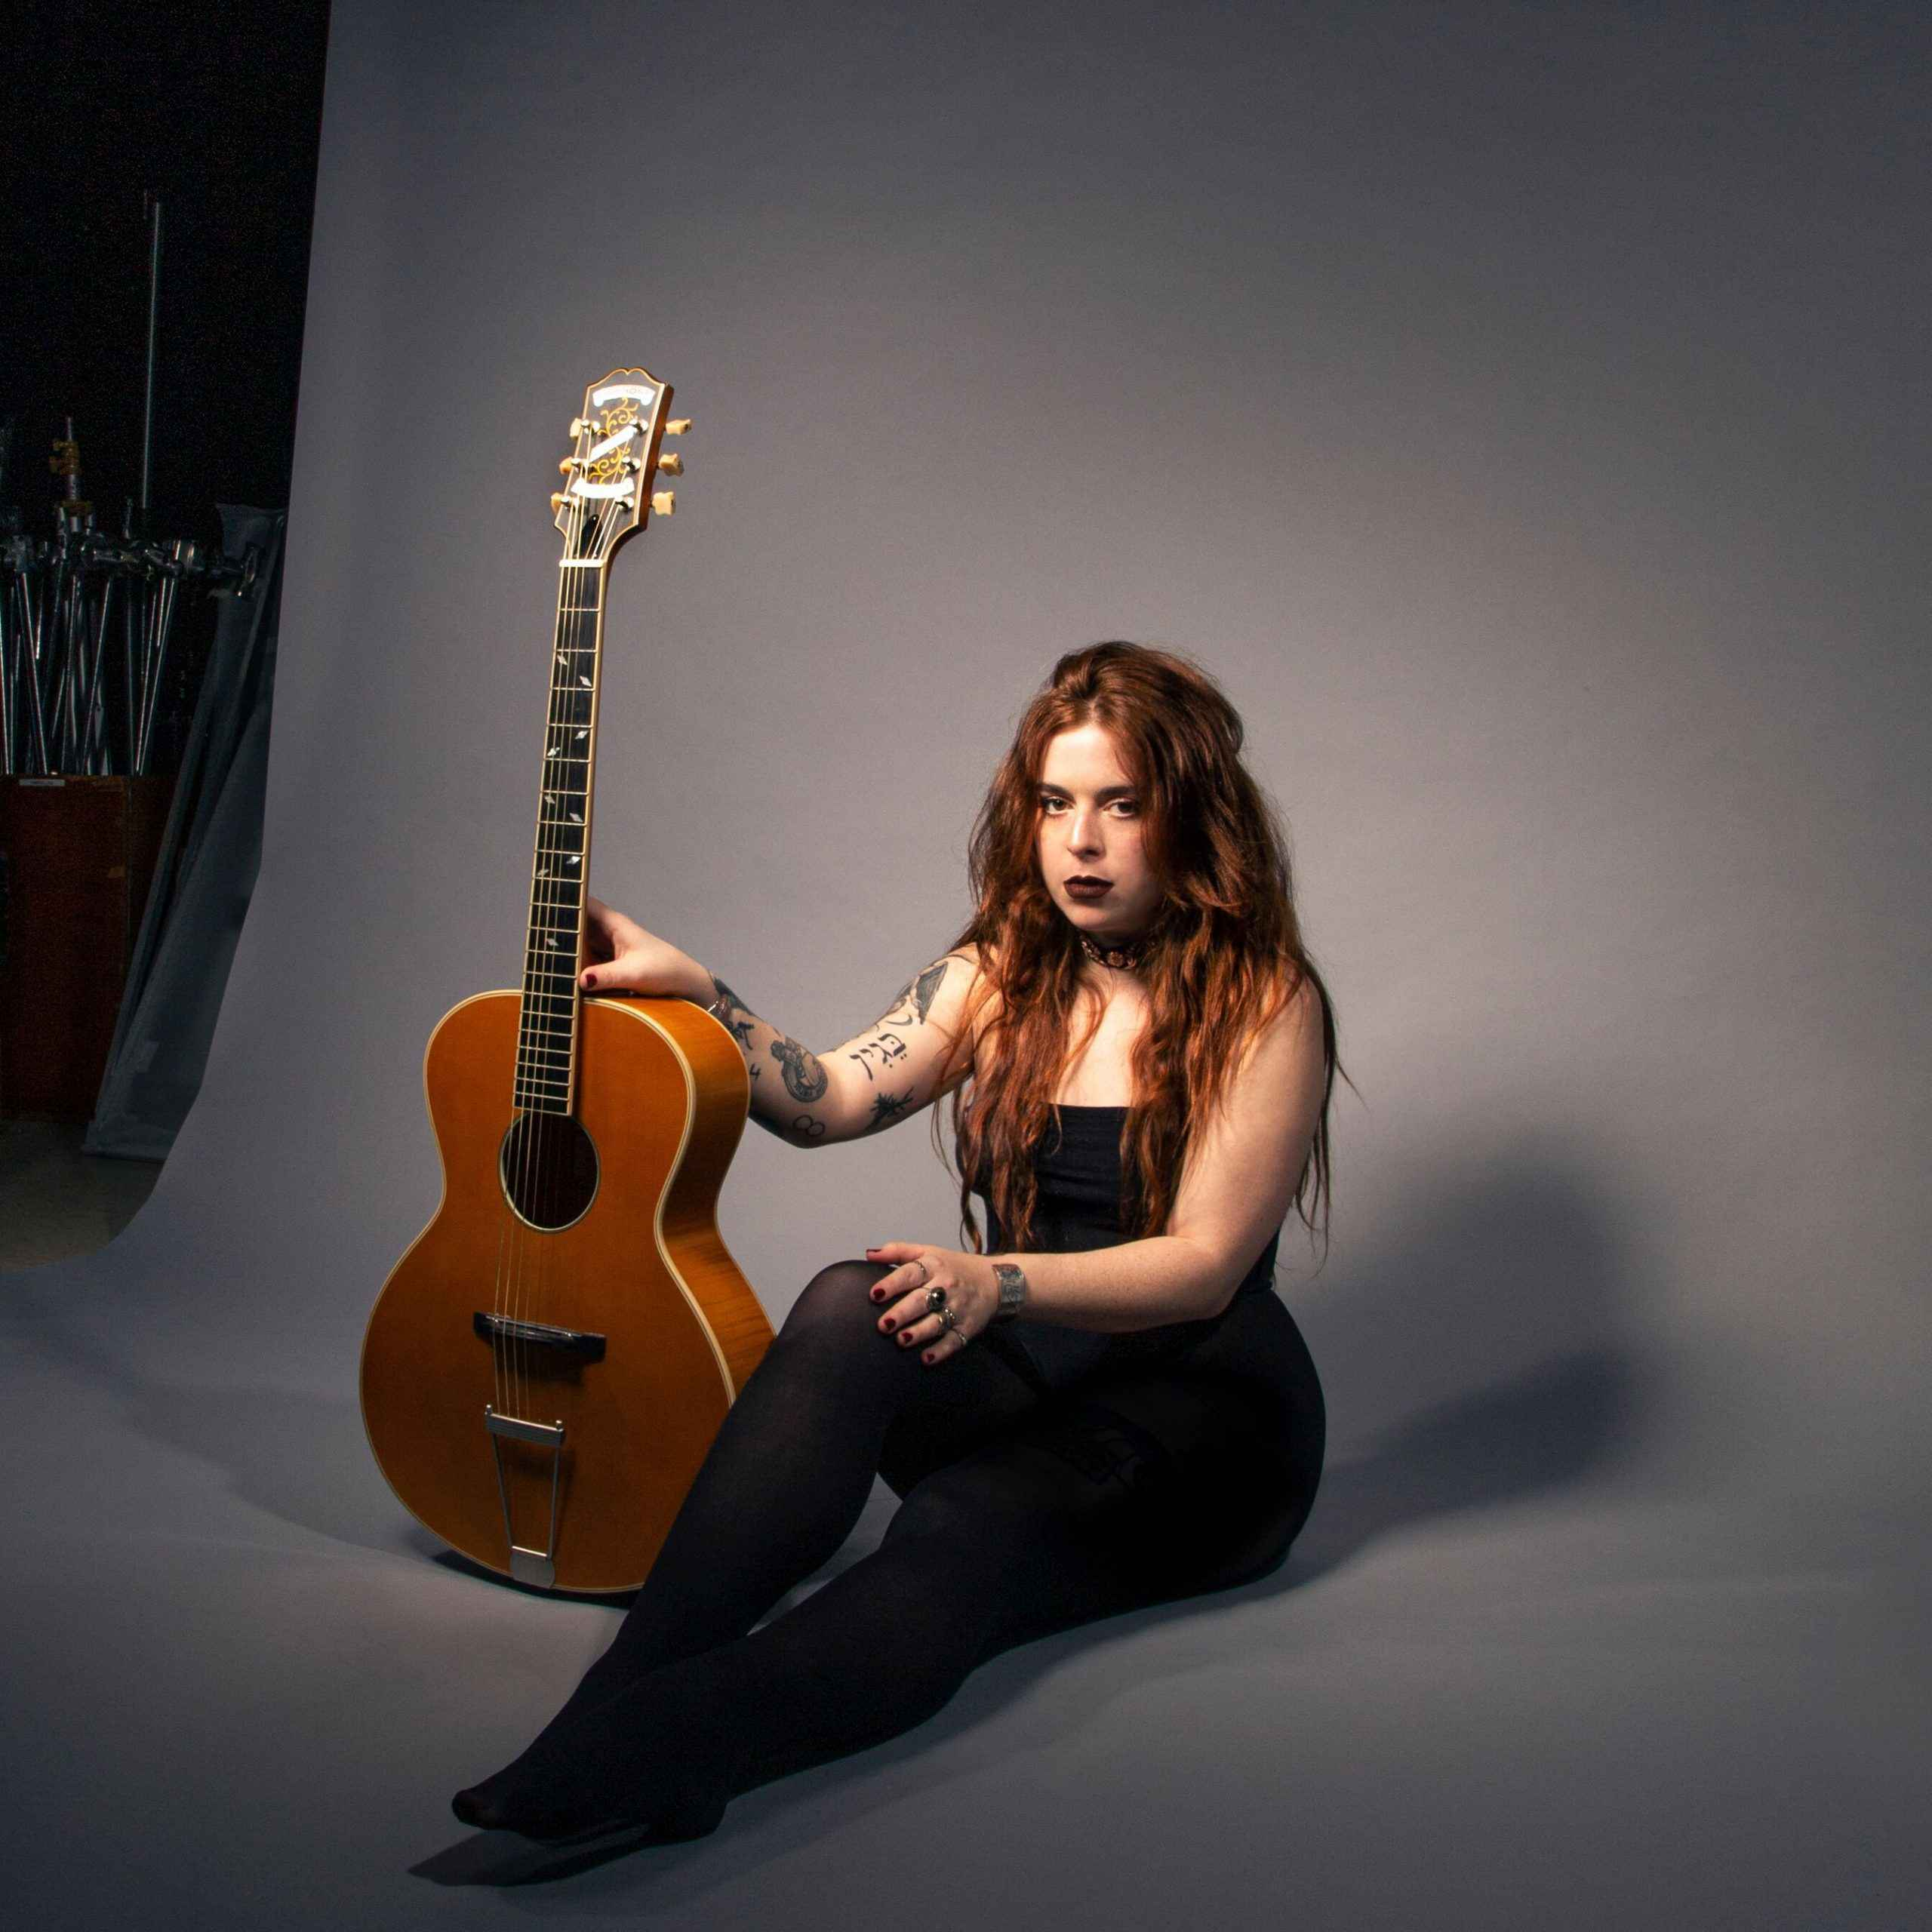 Kim Logan and the Silhouettes. Rotosound player artist female guitarist